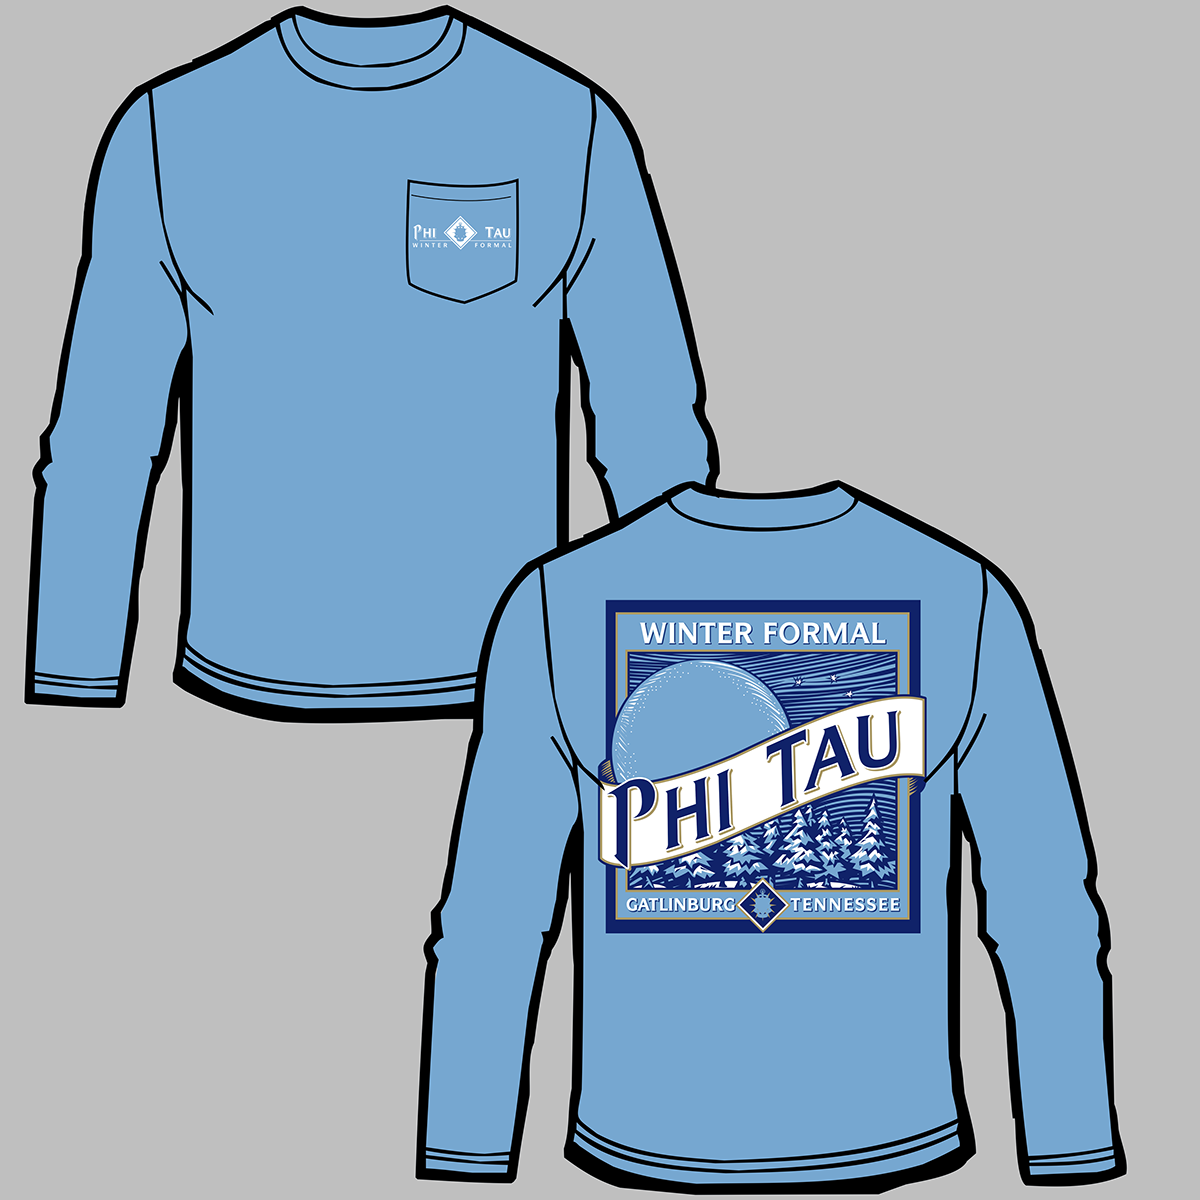 fraternity rush shirt ideas